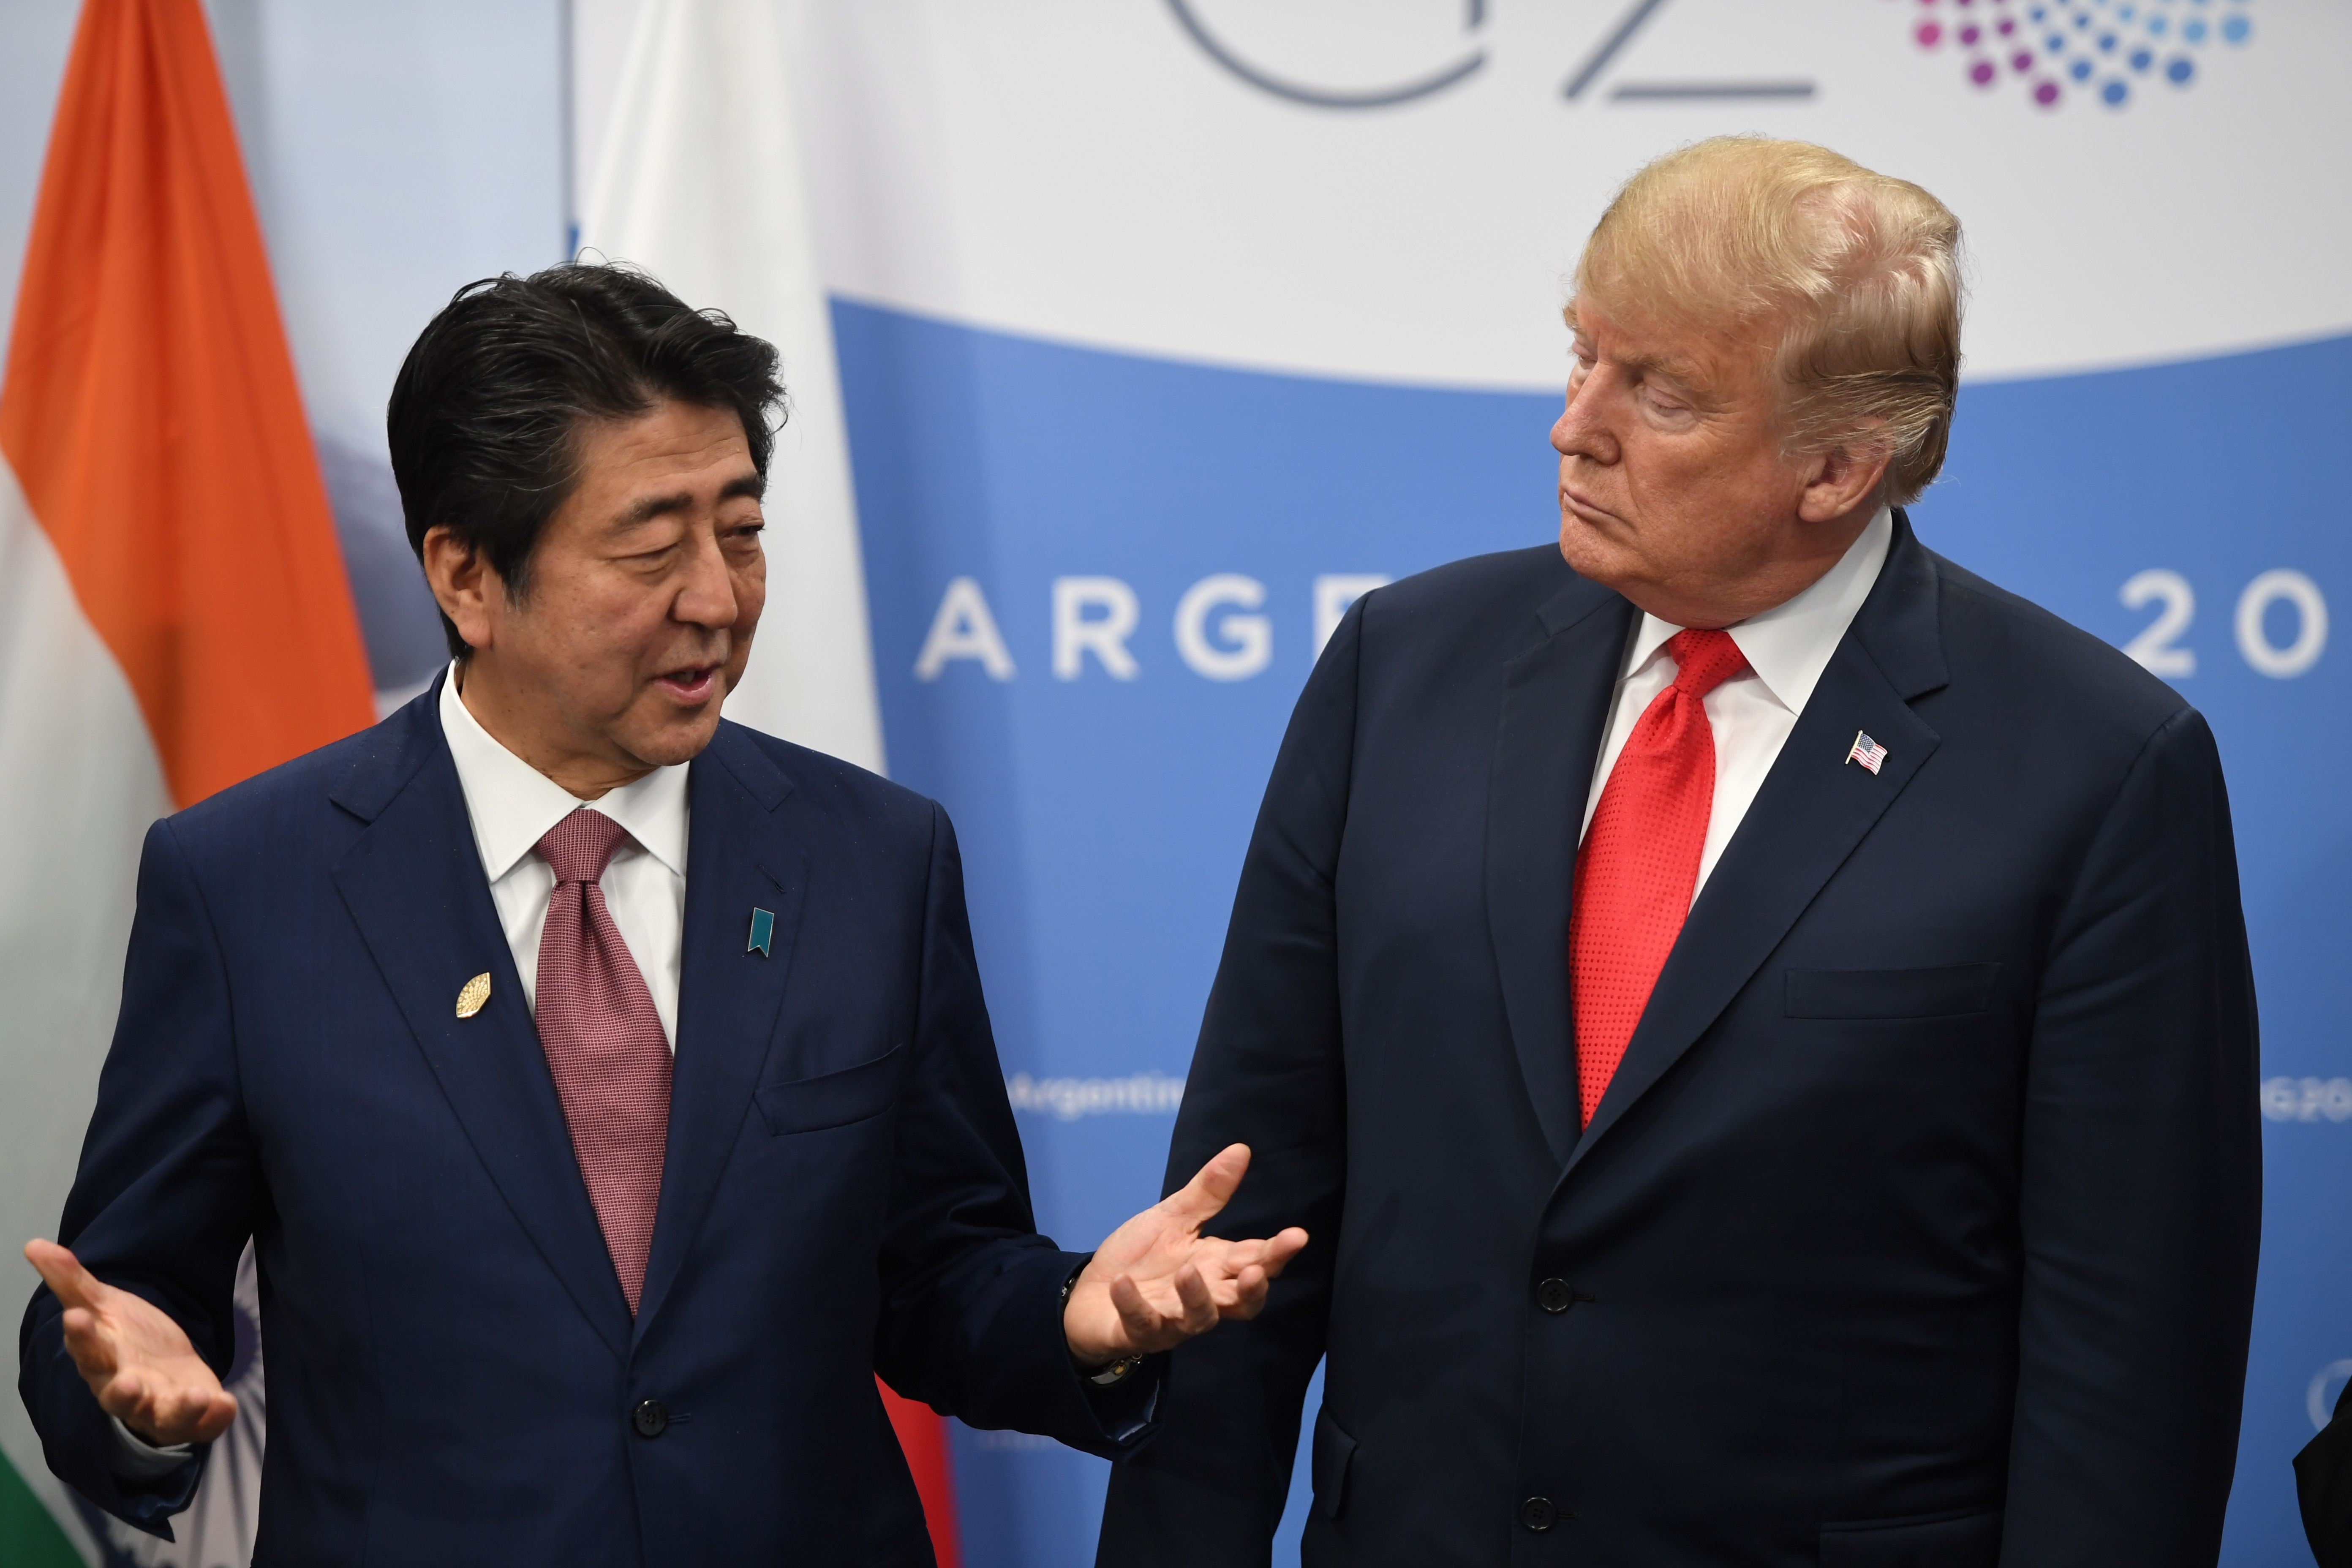 Japan's Prime Minister Shinzo Abe speaks with US President Donald Trump during a meeting in the sidelines of the G20 Leaders' Summit in Buenos Aires, on November 30, 2018. (SAUL LOEB/AFP/Getty Images)